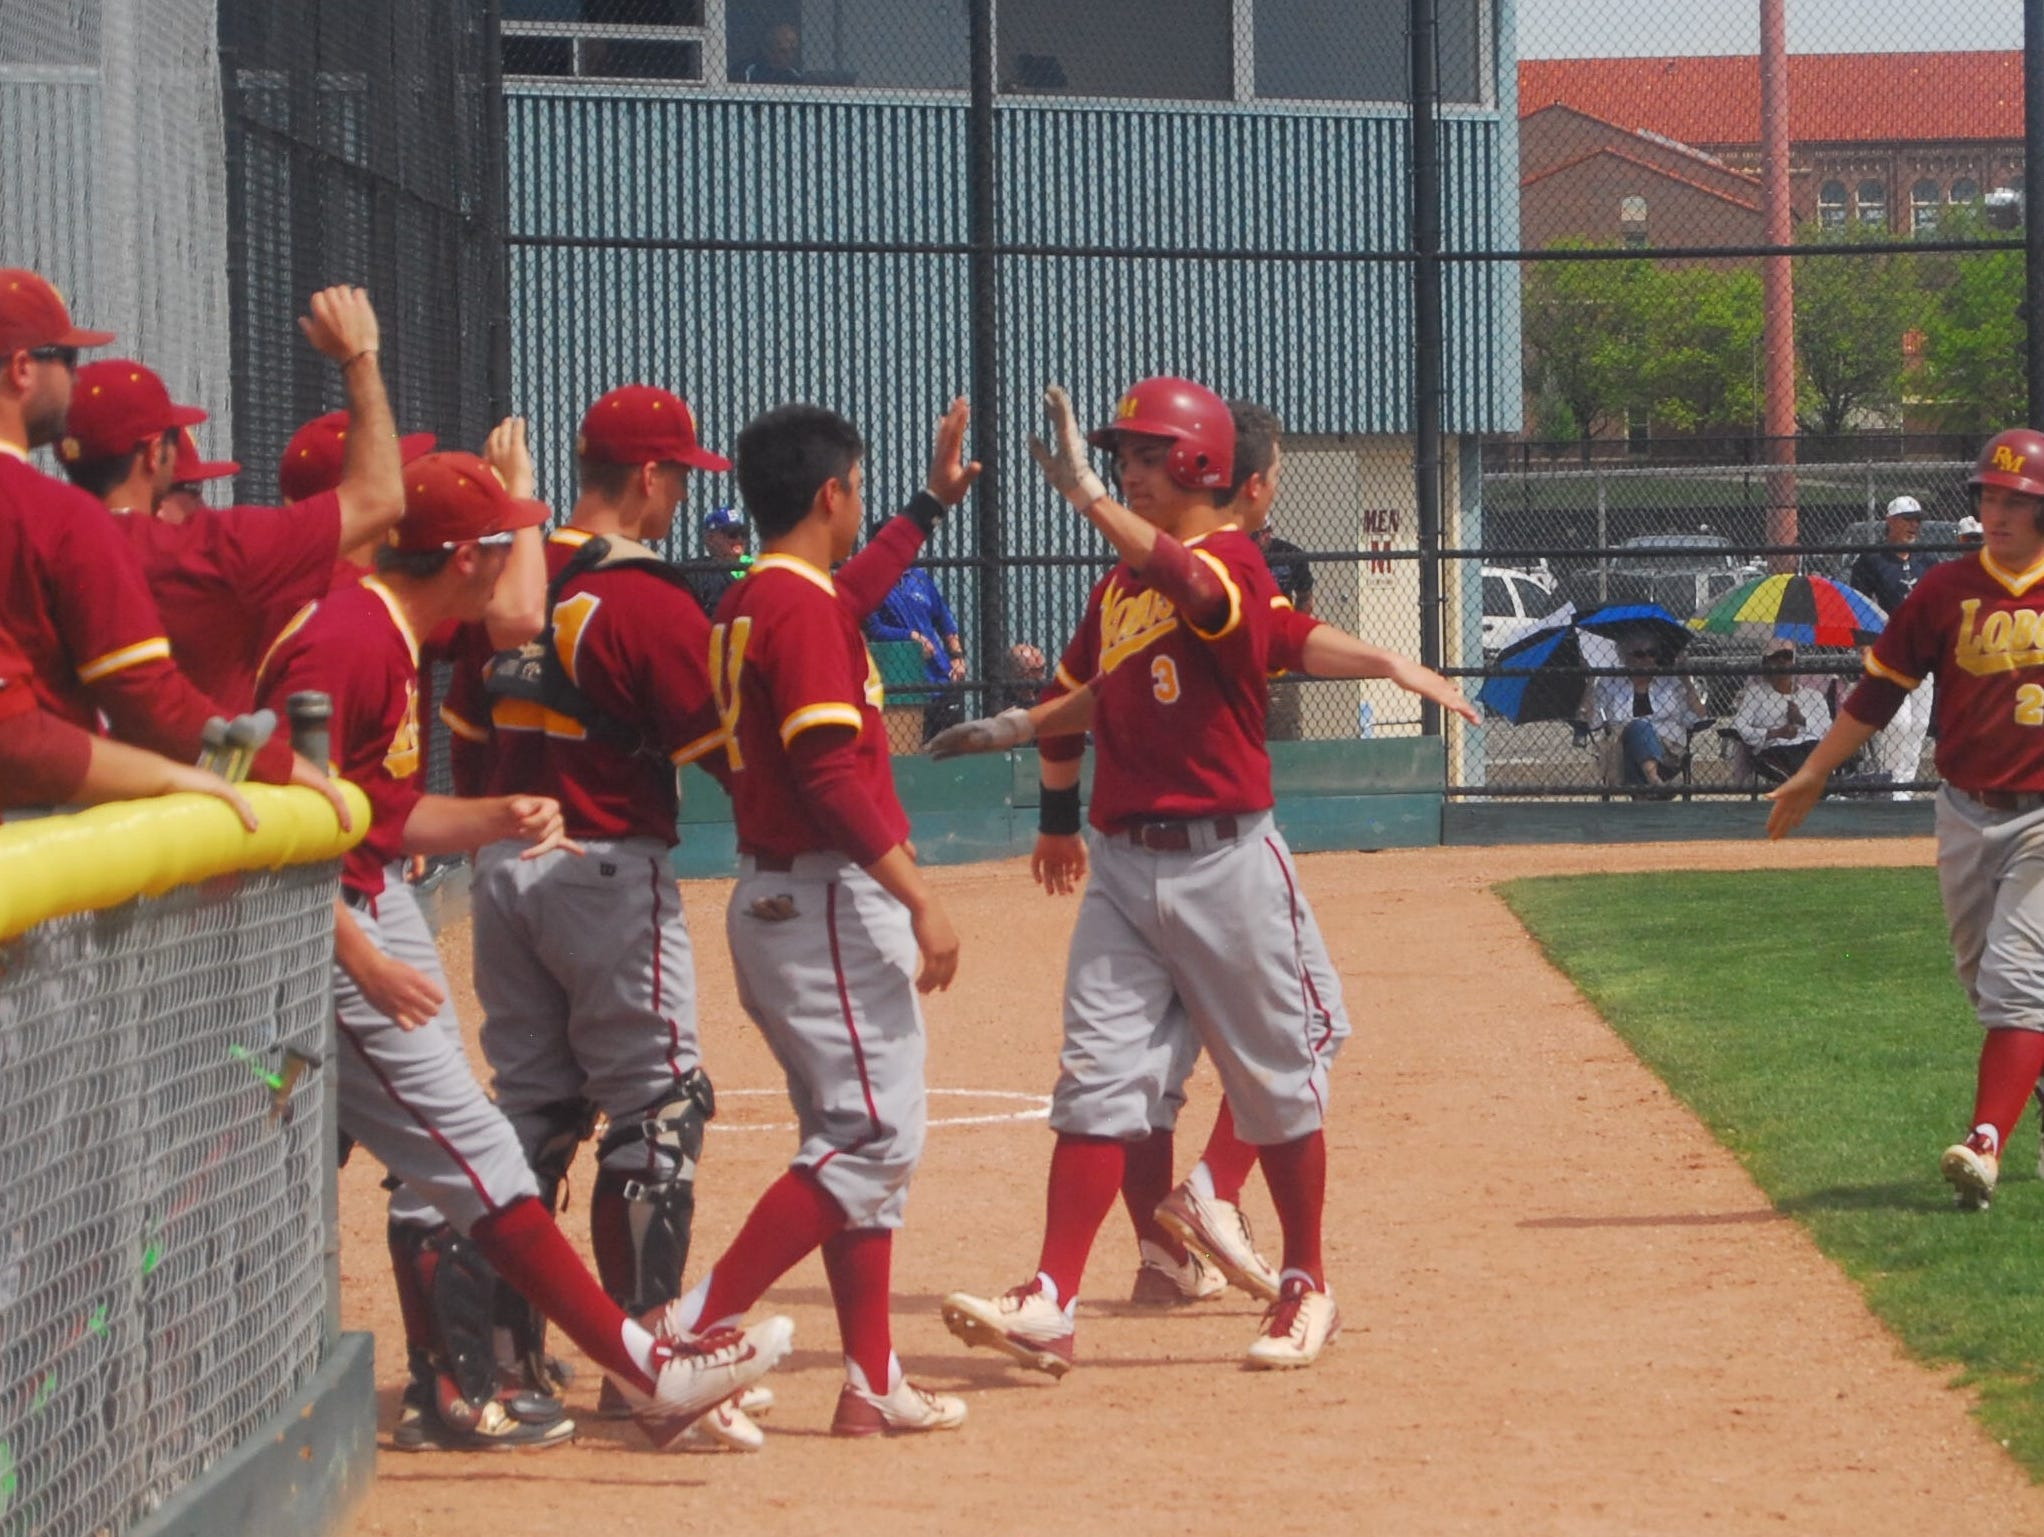 Rocky Mountain beat Mullen 5-1 in the opening game of the Class 5A playoffs.